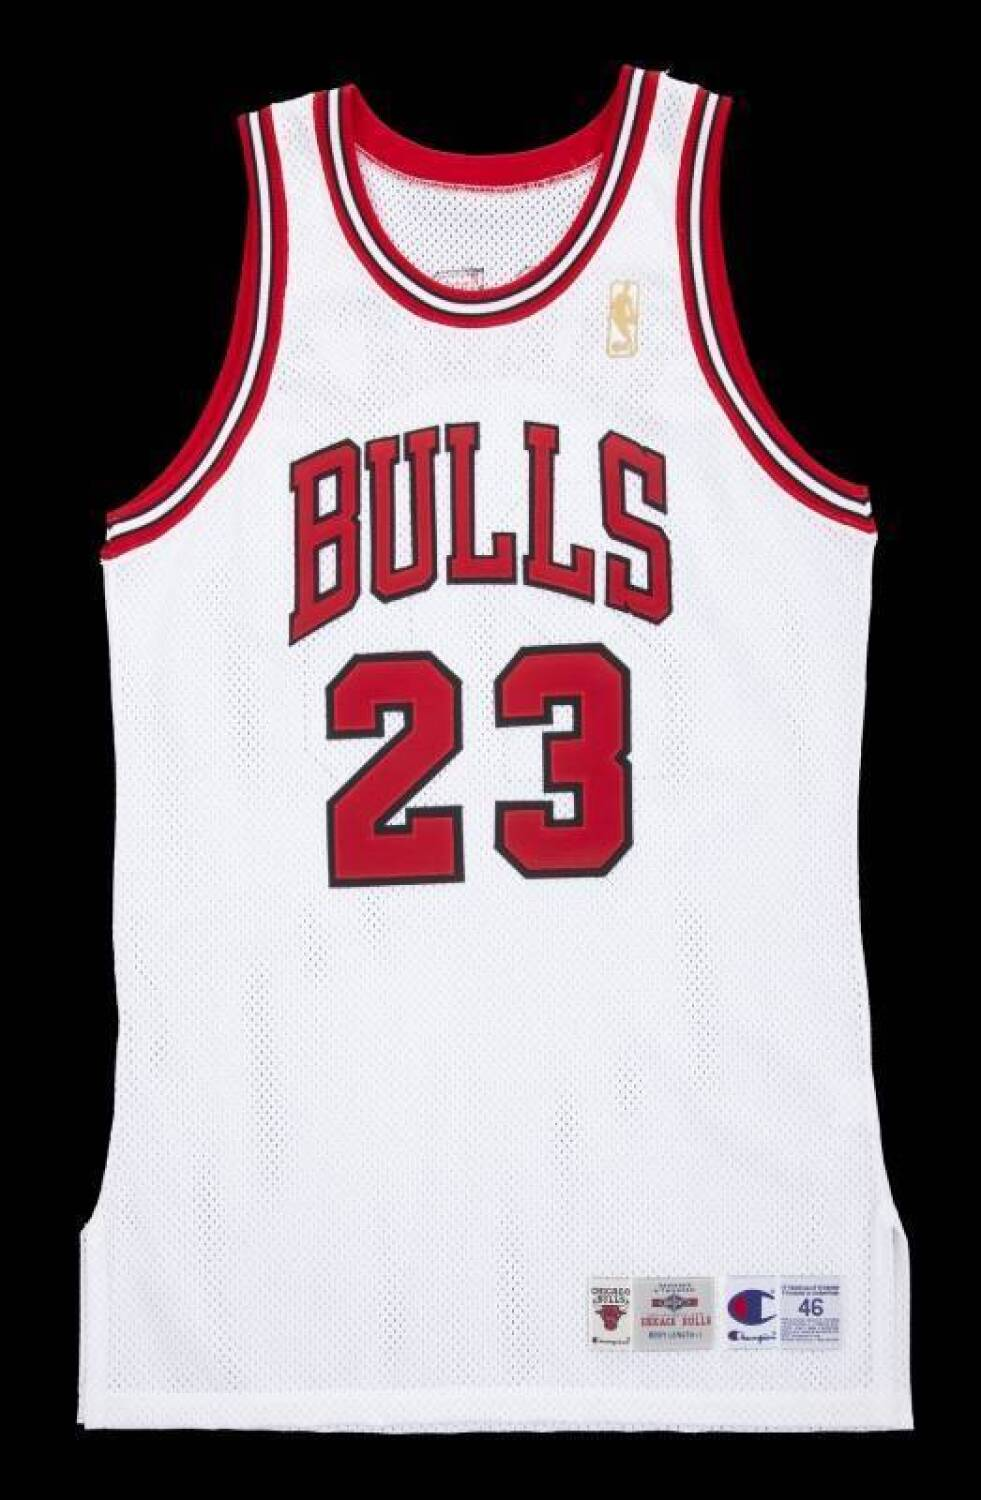 0611c2a5c265 MICHAEL JORDAN SIGNED 1996-97 CHICAGO BULLS JERSEY Please Wait... Click  image to enlarge